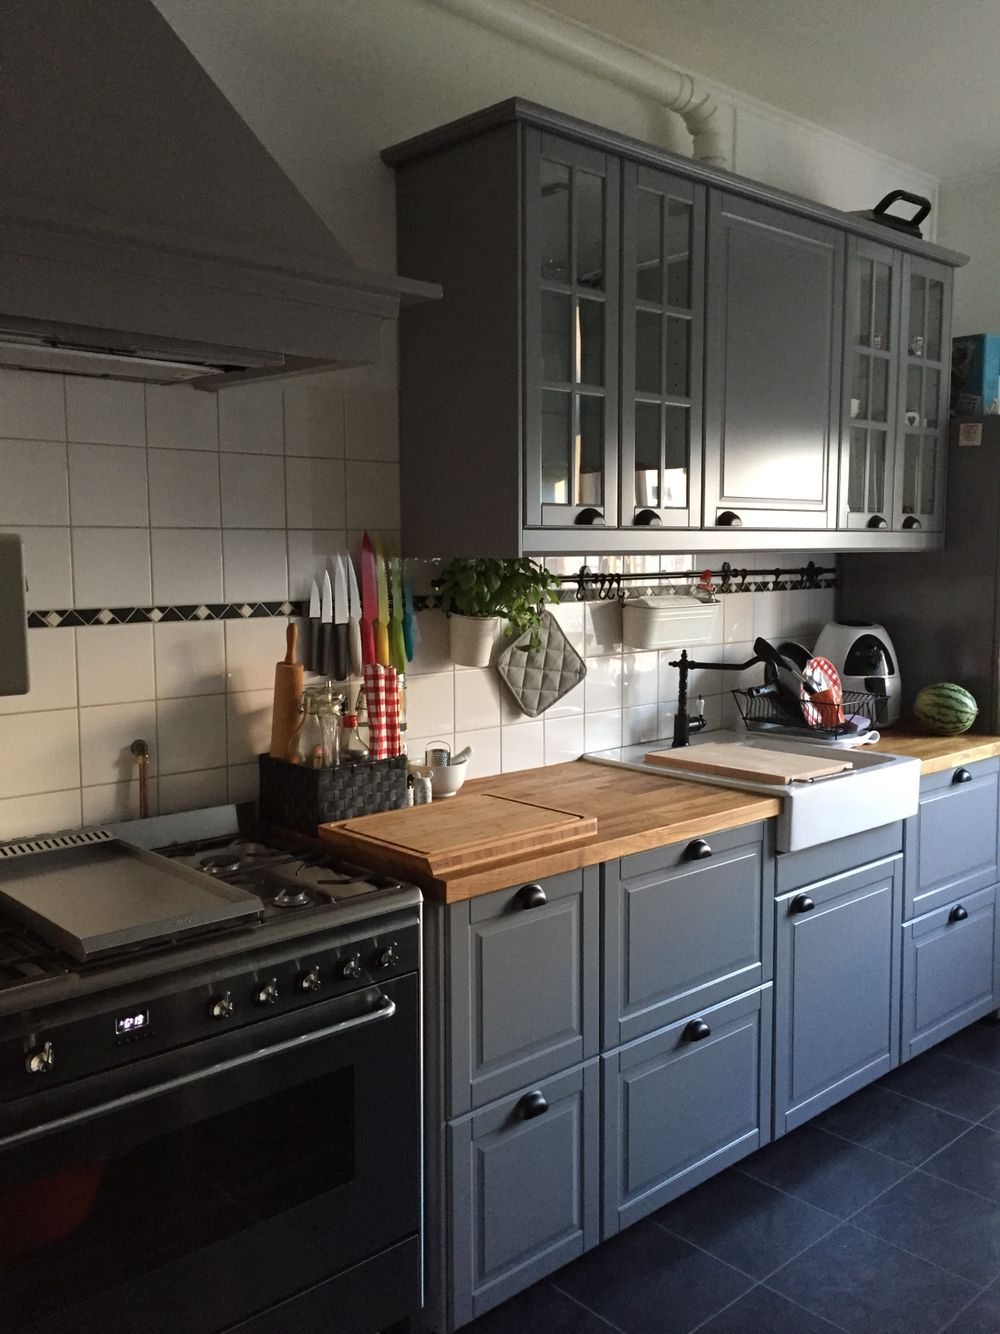 Our New Ikea Kitchen Bodbyn Brey With The Smeg Oven Ikea Bodbyn Pinterest Oven Kitchens